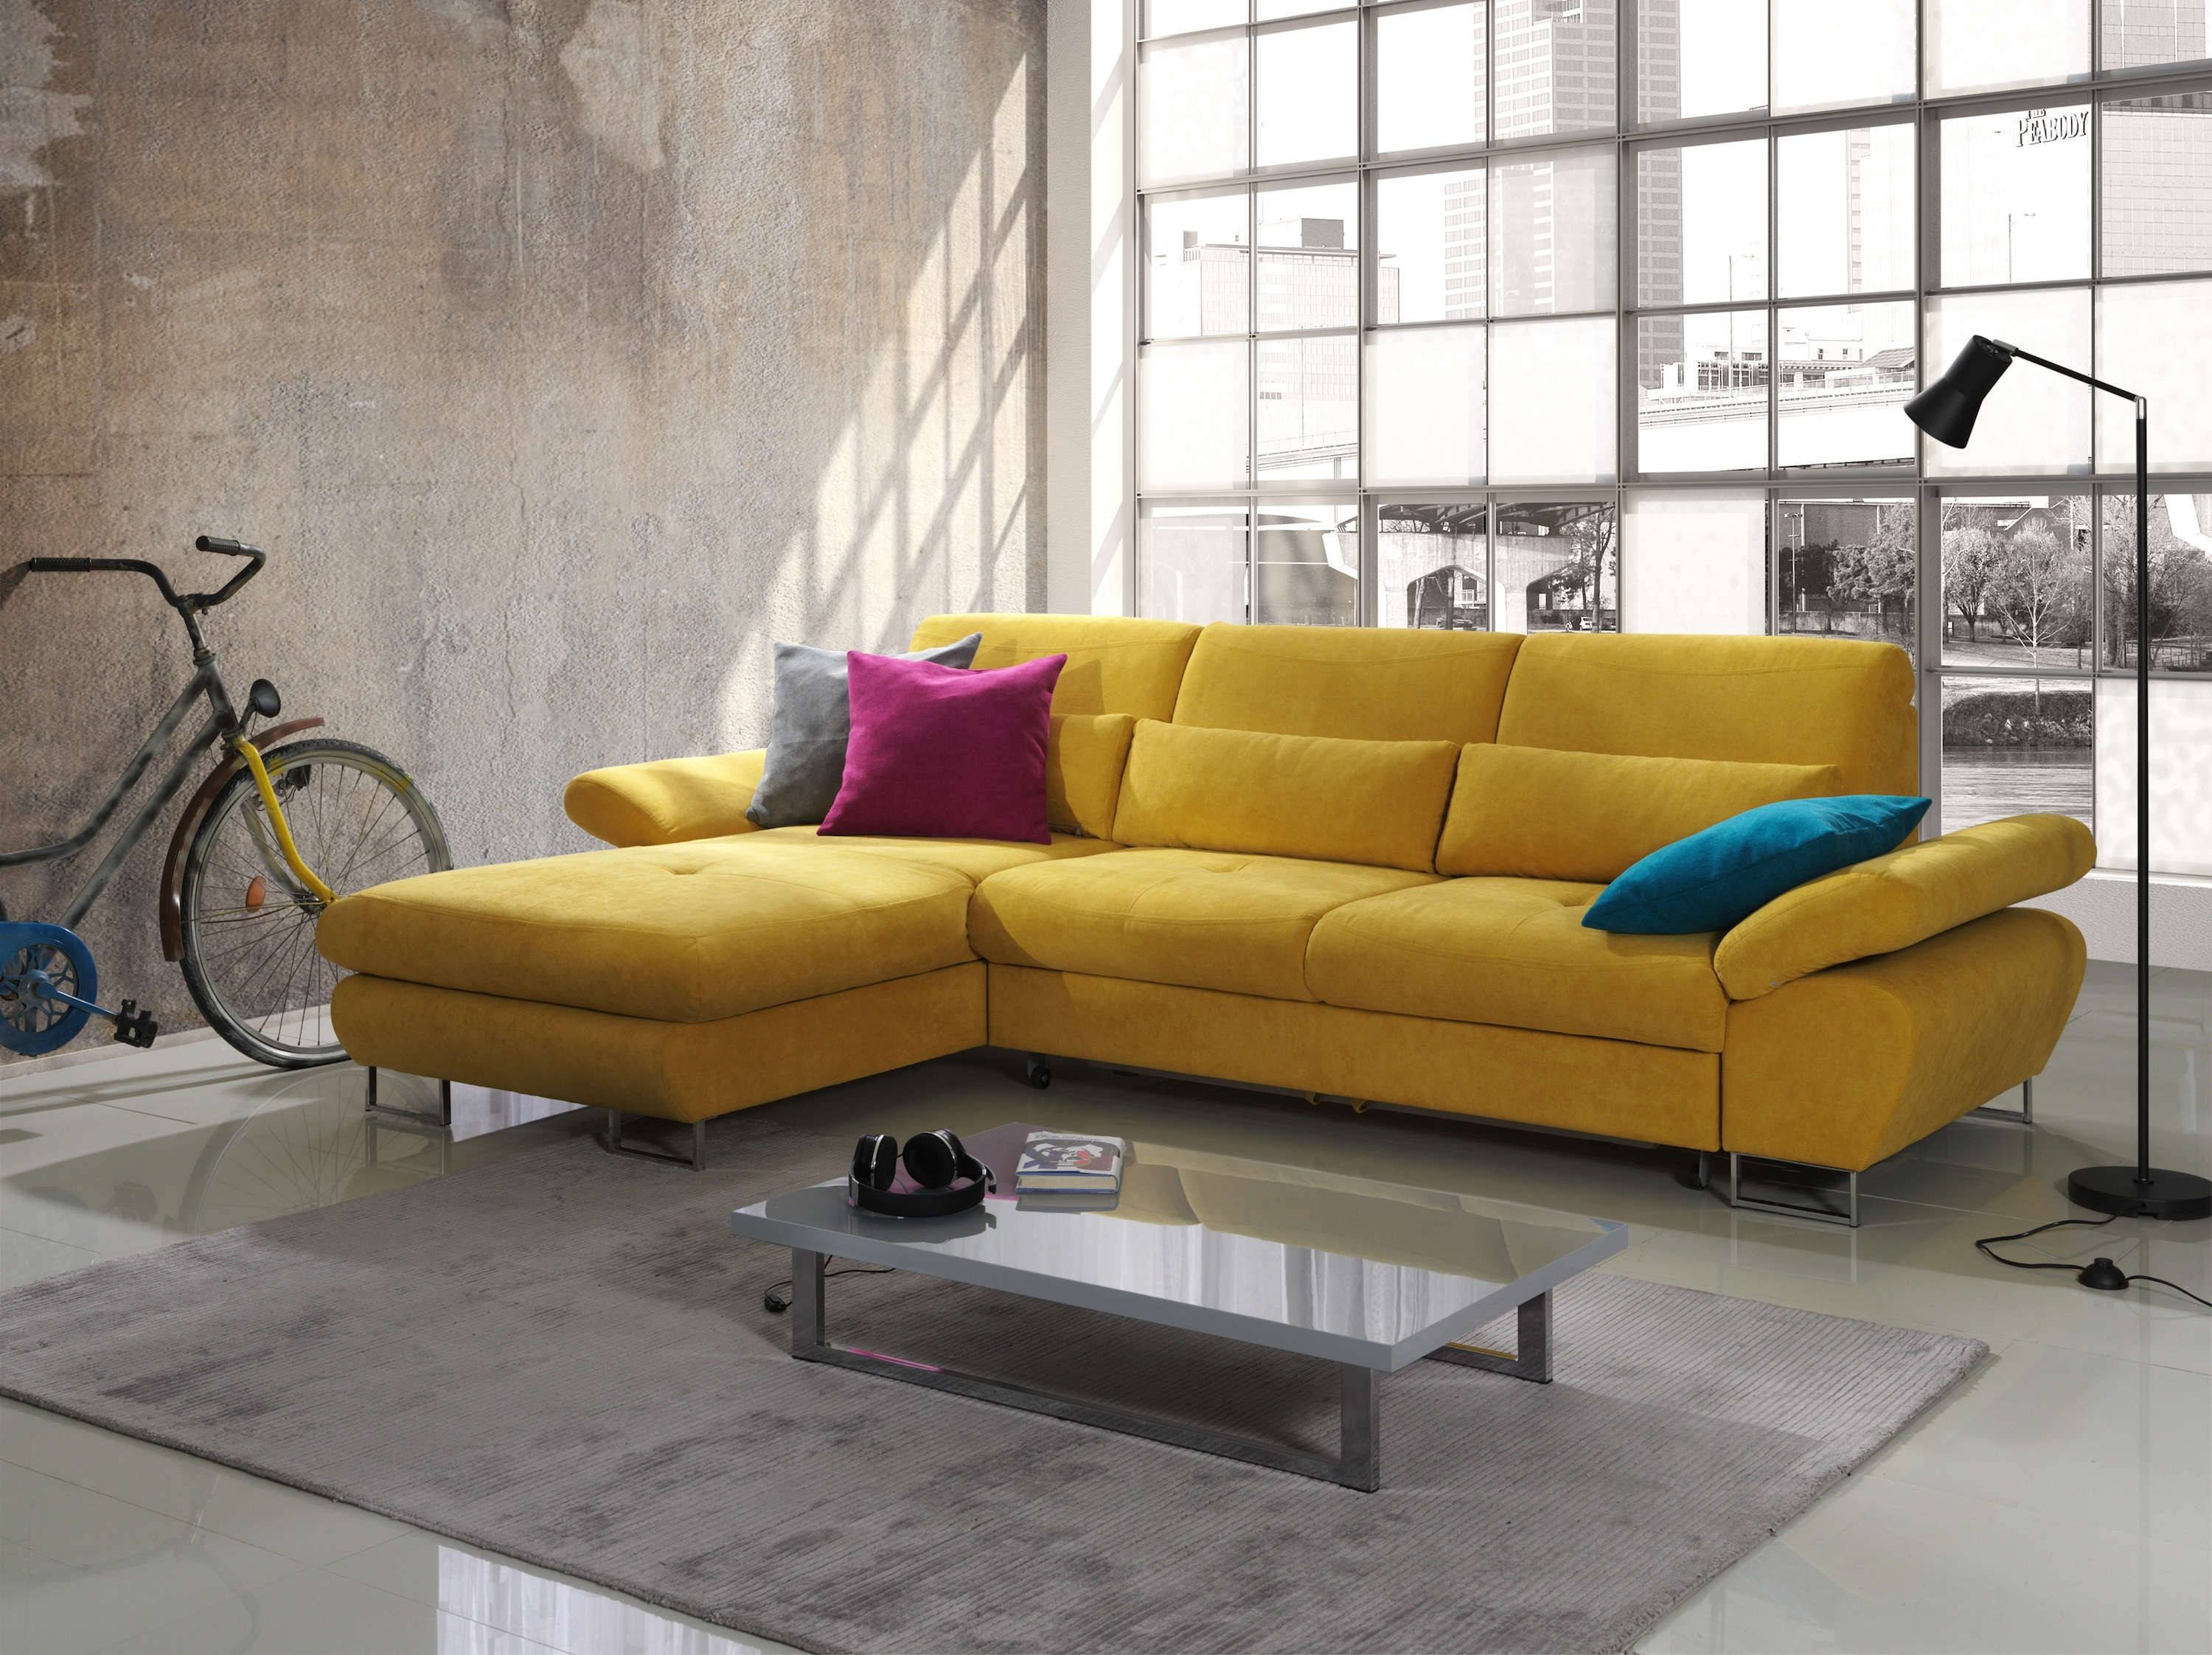 Furniture: Contemporary Sectional Sofas With Beige Shag Rug And intended for Coffee Table for Sectional Sofa With Chaise (Image 13 of 30)